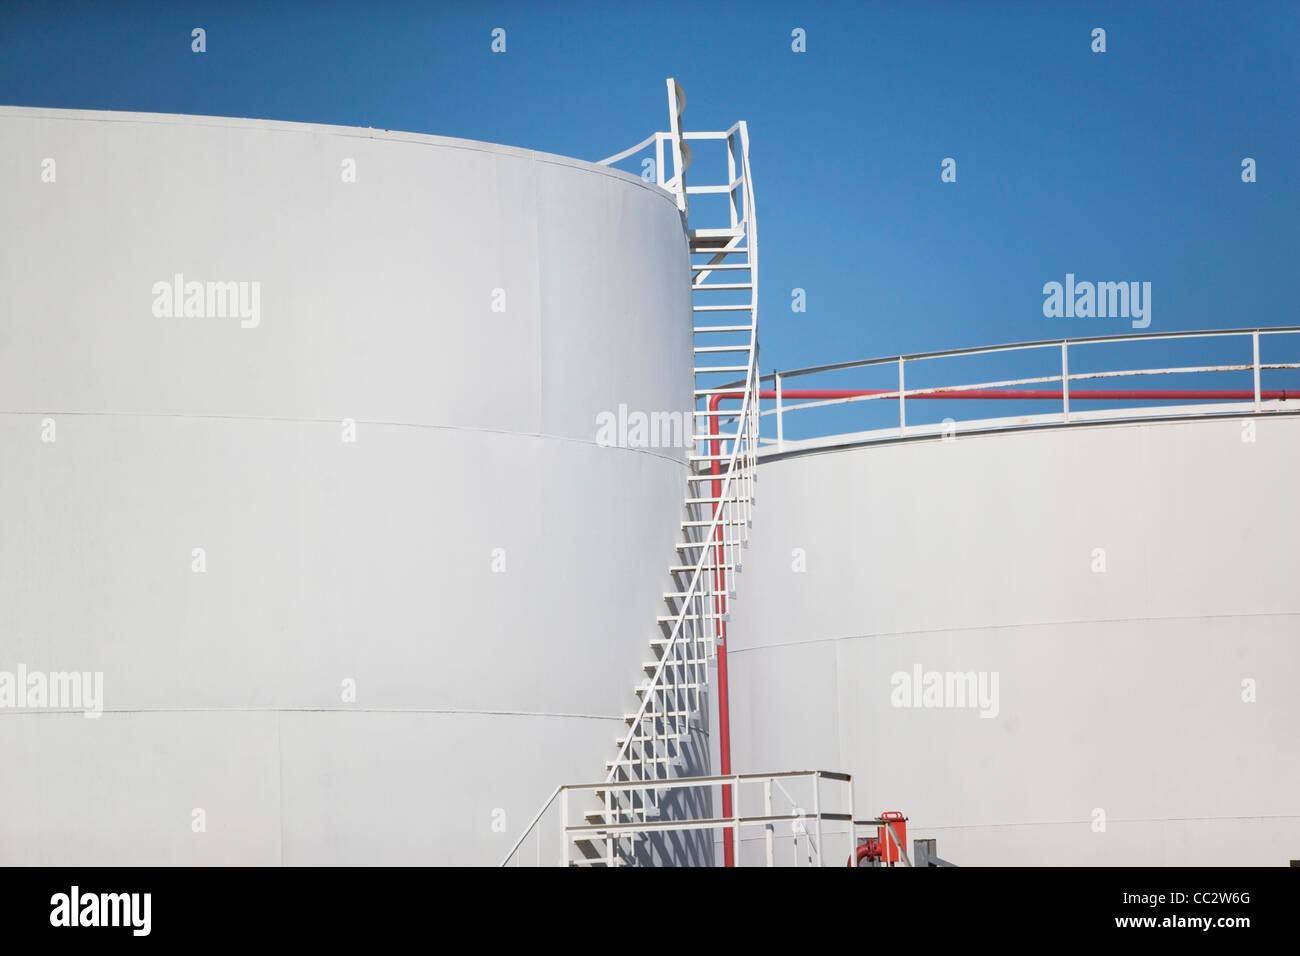 Oil Tank Stock Photos Oil Tank Stock Images Alamy